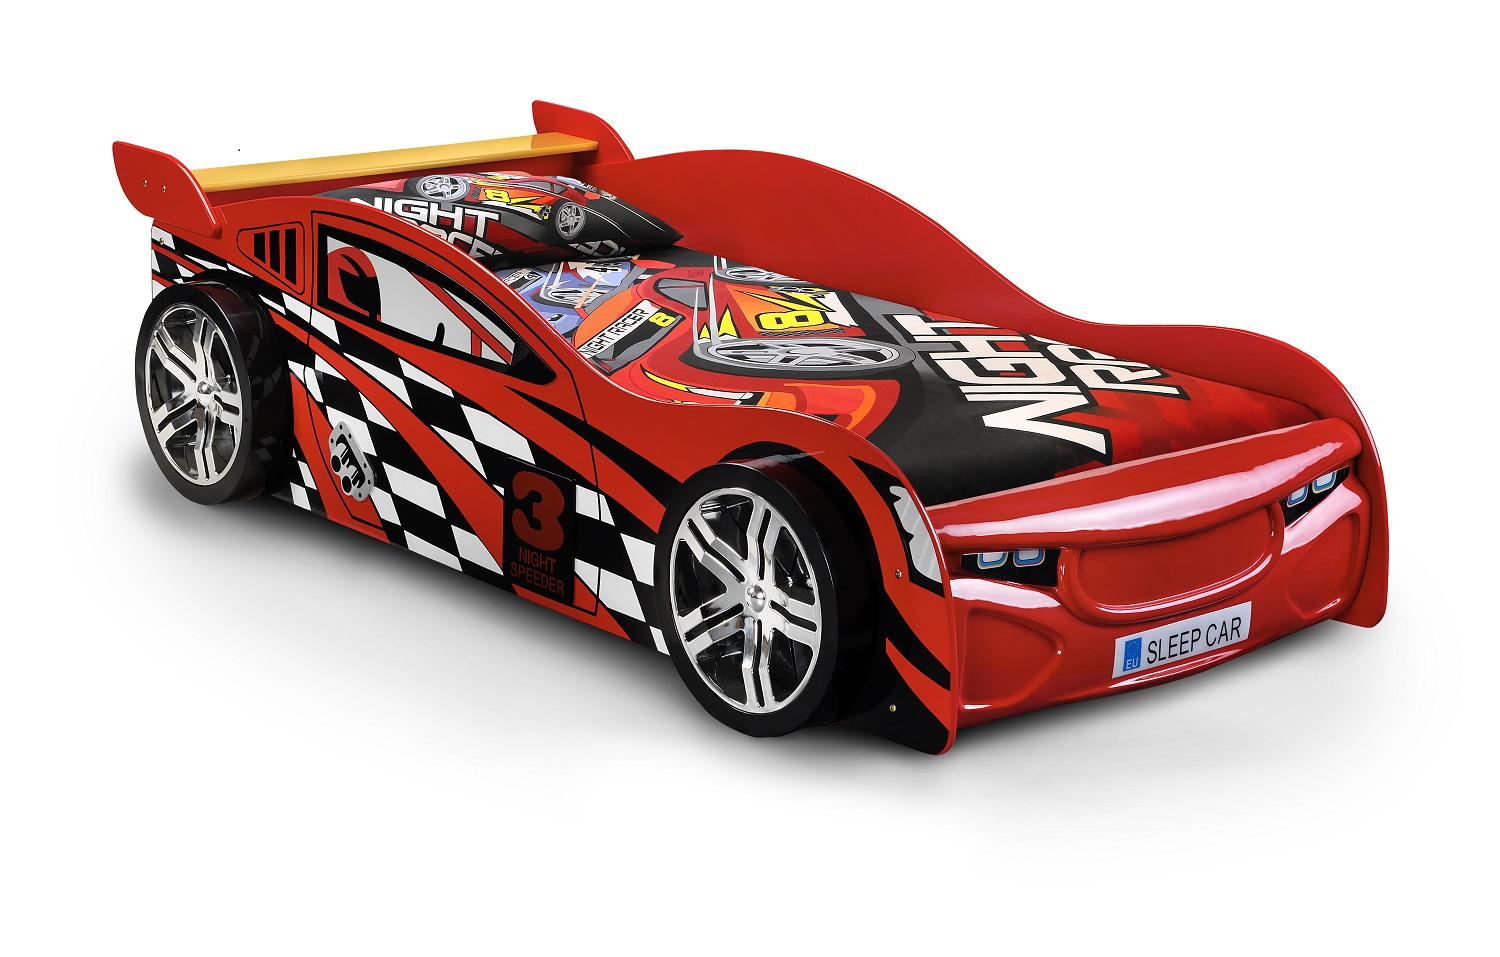 Picture of: Photos of Race Car Toddler Bed